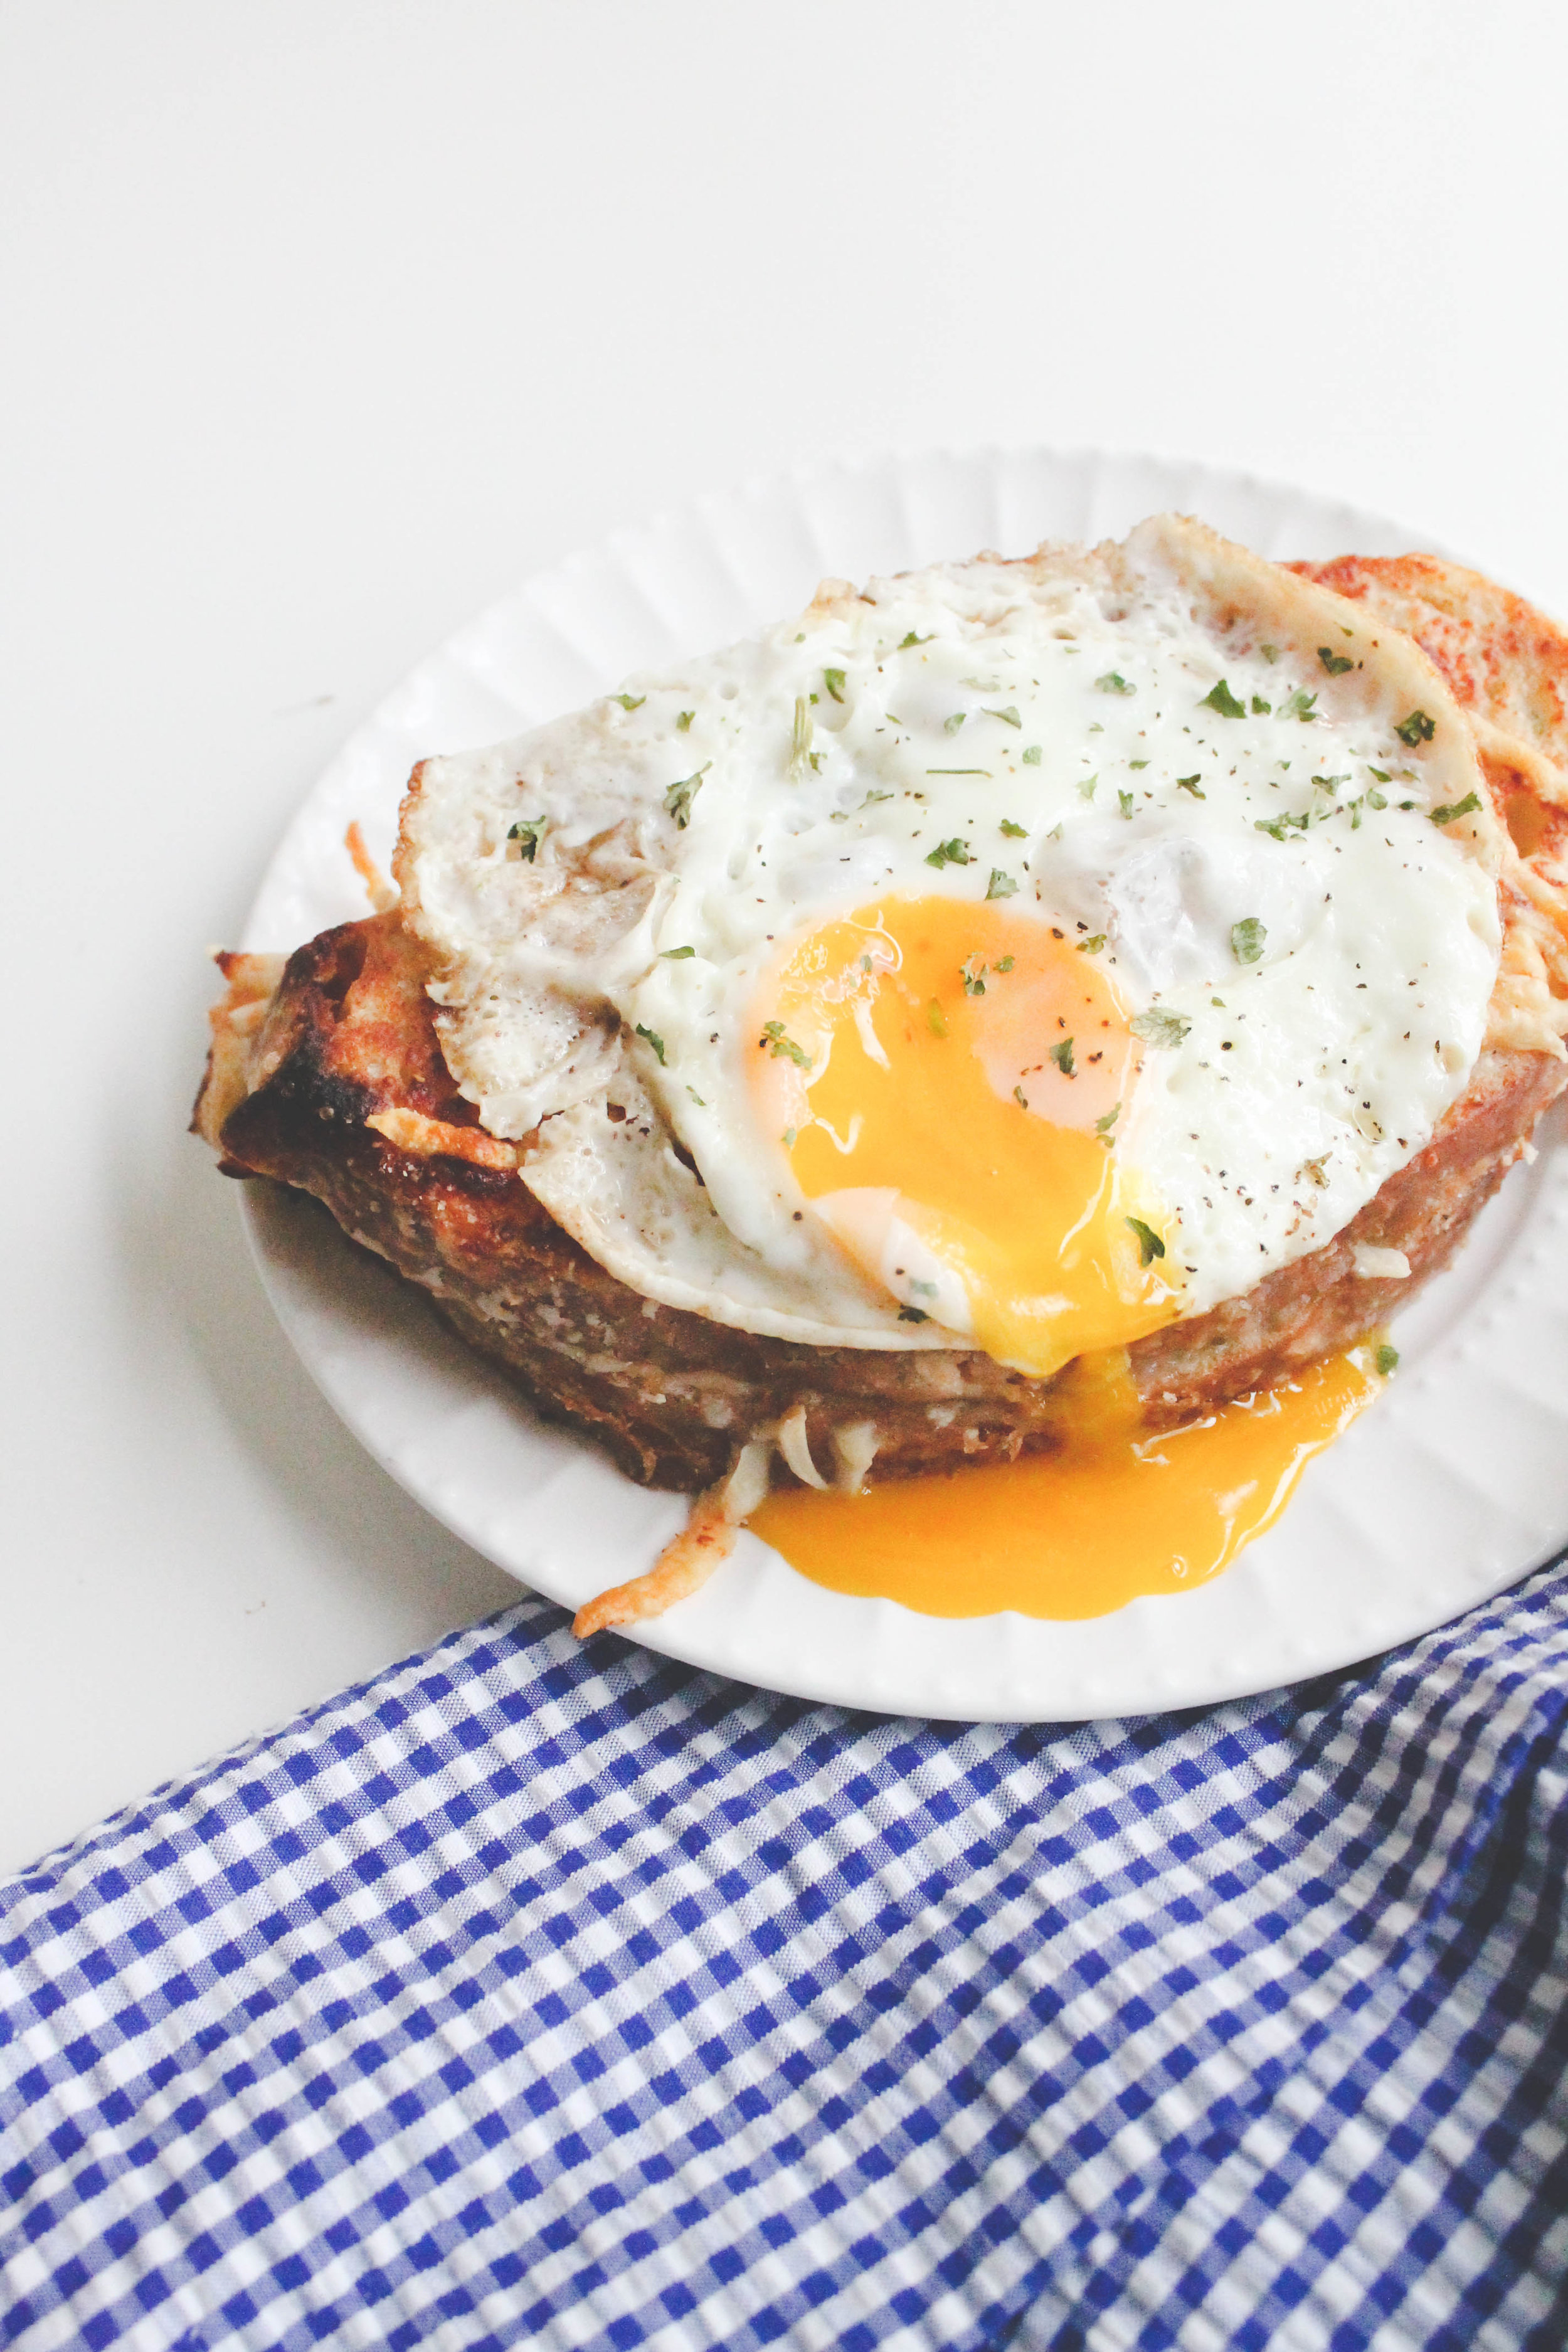 Croque Madame - A croque madame is the perfect brunch sandwich to absolutely wow your brunch guests. With thick slices of artisan bread, gourmet cheese oozing out of every corner and topped with a sunny side up farm fresh egg… this sandwich is the definition of delicious.